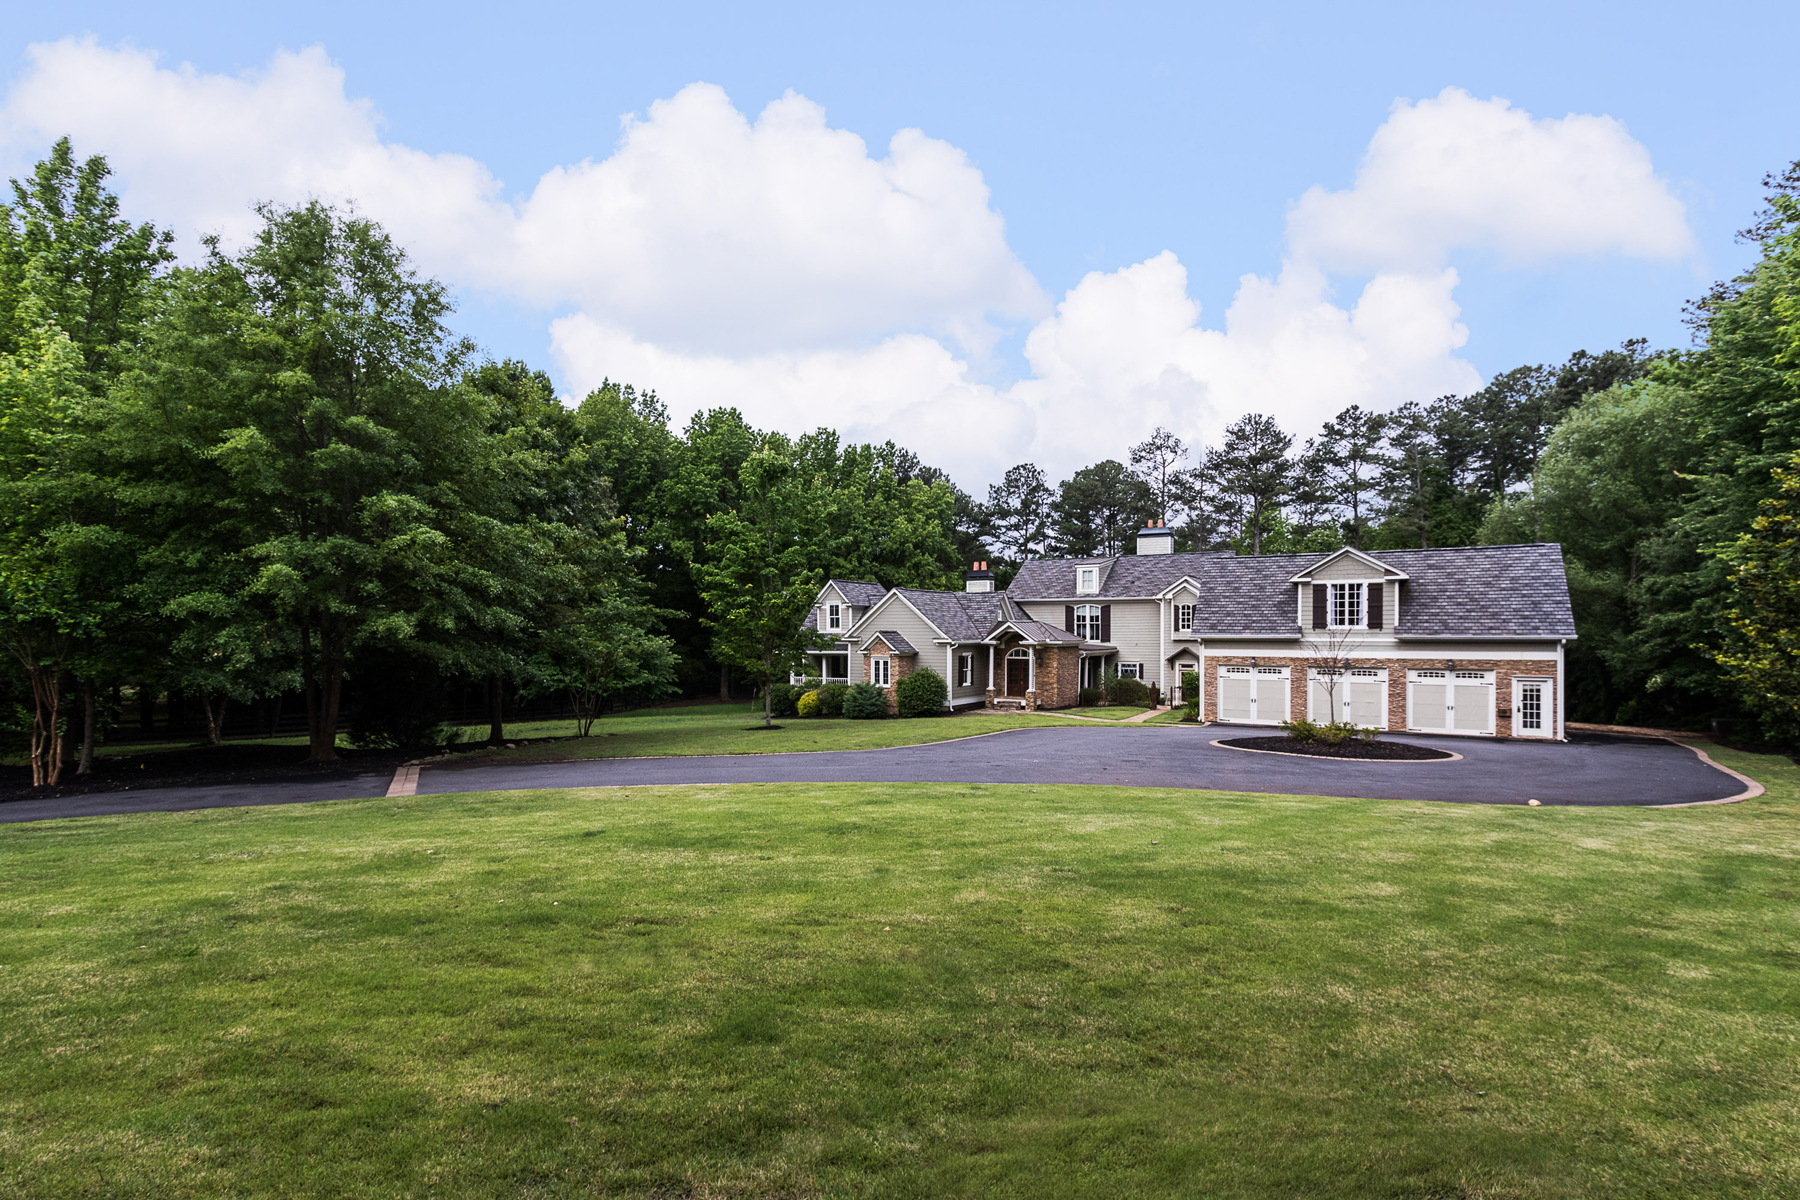 Single Family Home for Sale at Spectacular Gated Farm House On 2+ Acres 11650 King Road Roswell, Georgia, 30075 United States